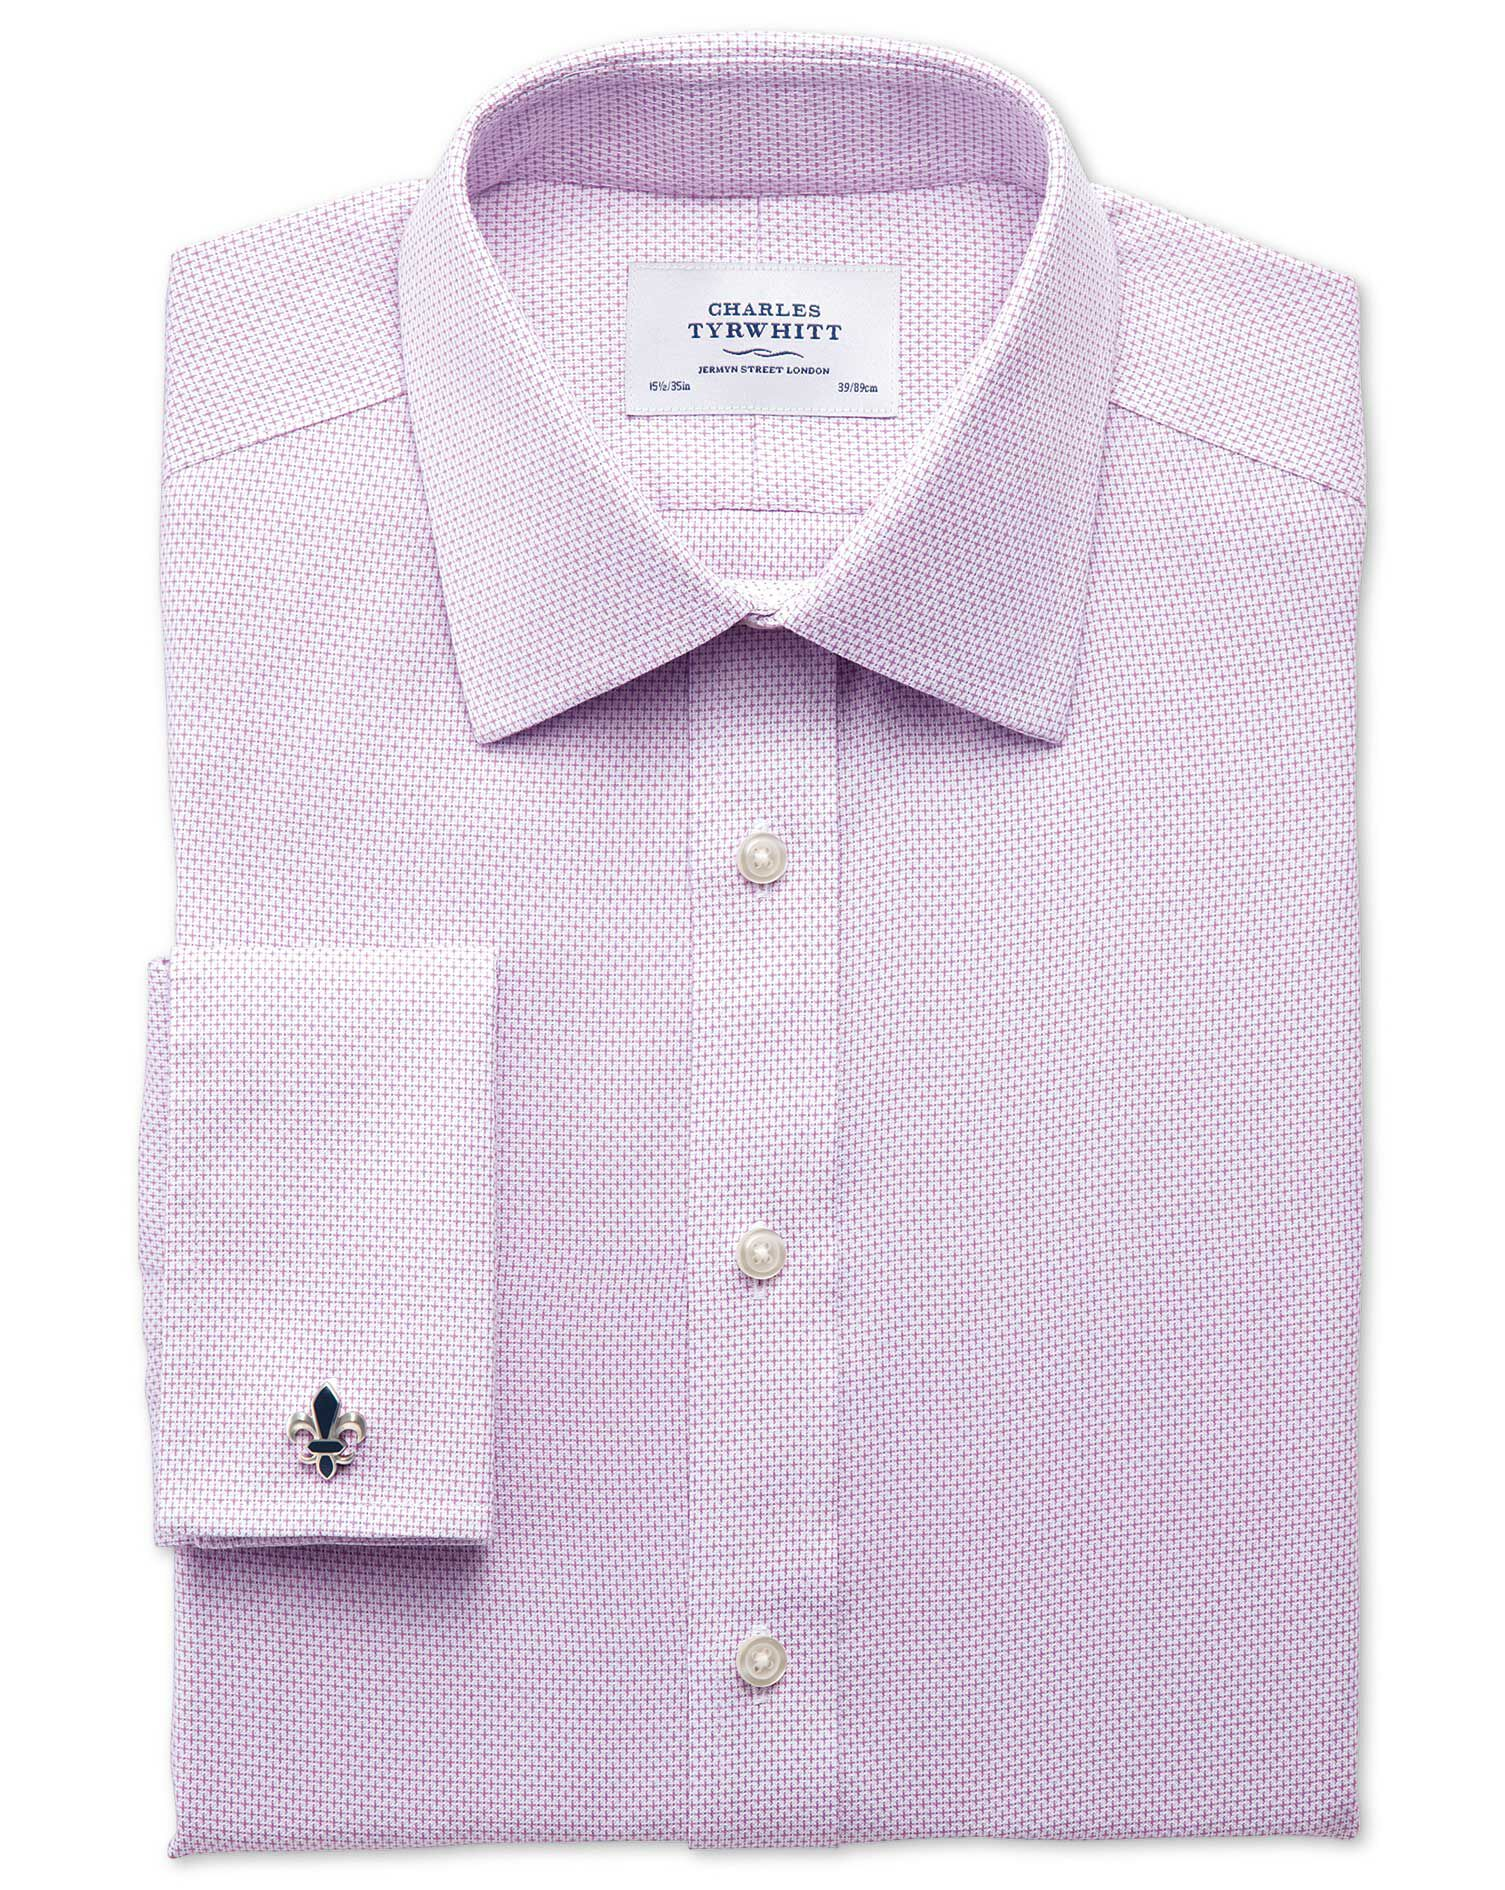 Charles Tyrwhitt Extra Slim Fit Non Iron Imperial Weave Lilac Cotton Formal Shirt Size 16.5/34